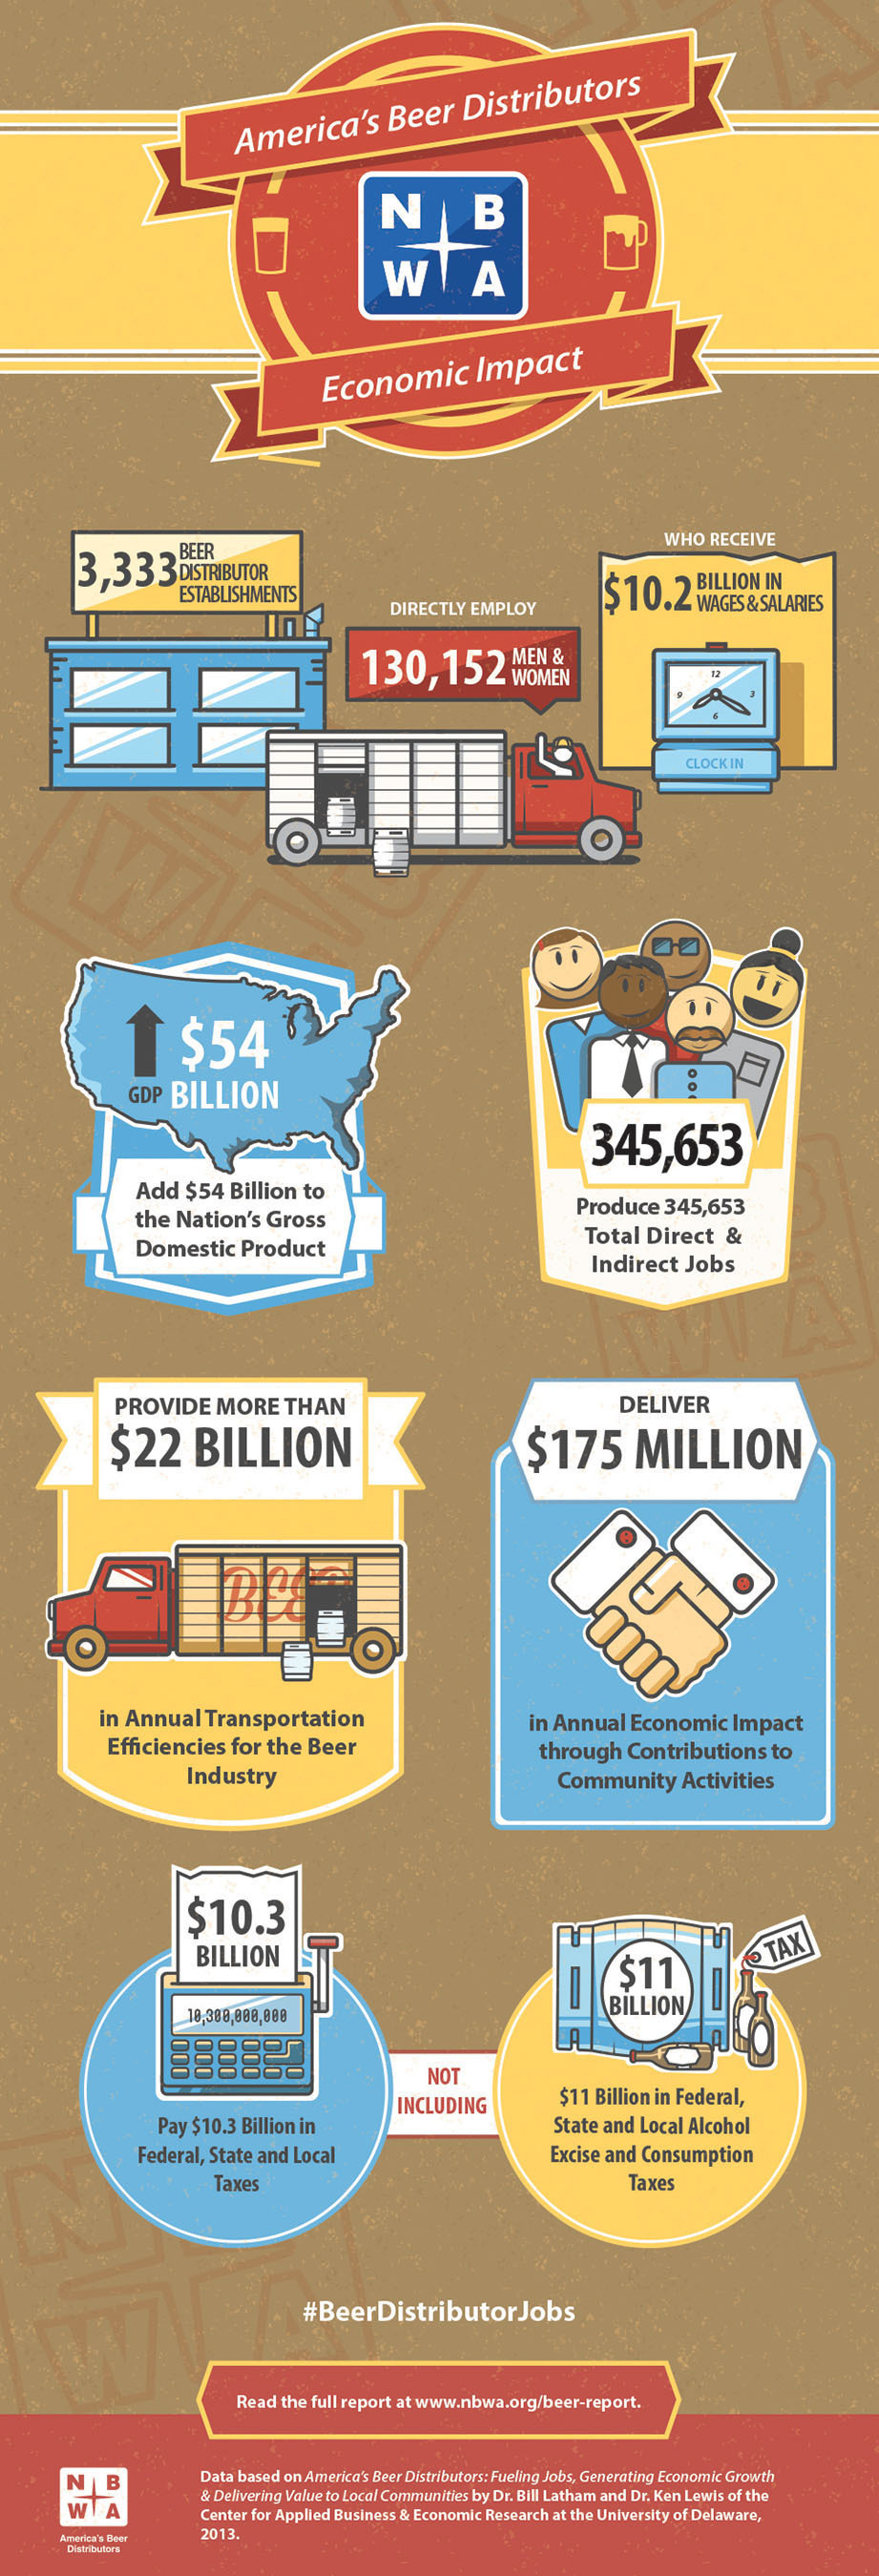 Michigan Beer Distributors Generate 4,763 Direct Jobs, $1.9 Billion in Total Economic Impacts